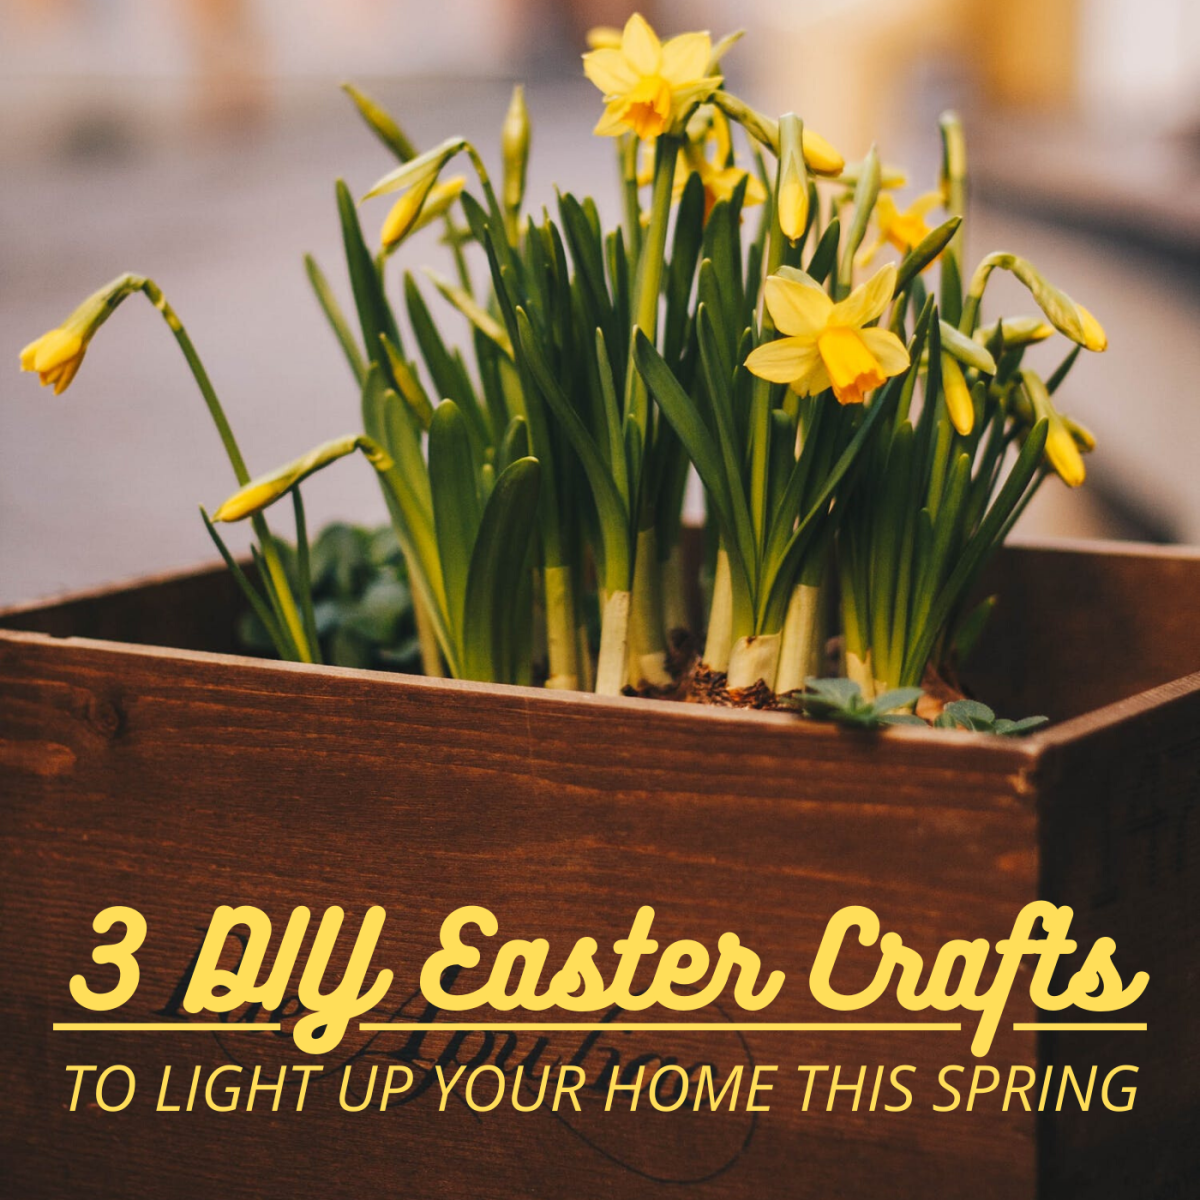 3 DIY Easter Decor Projects to Make This Spring